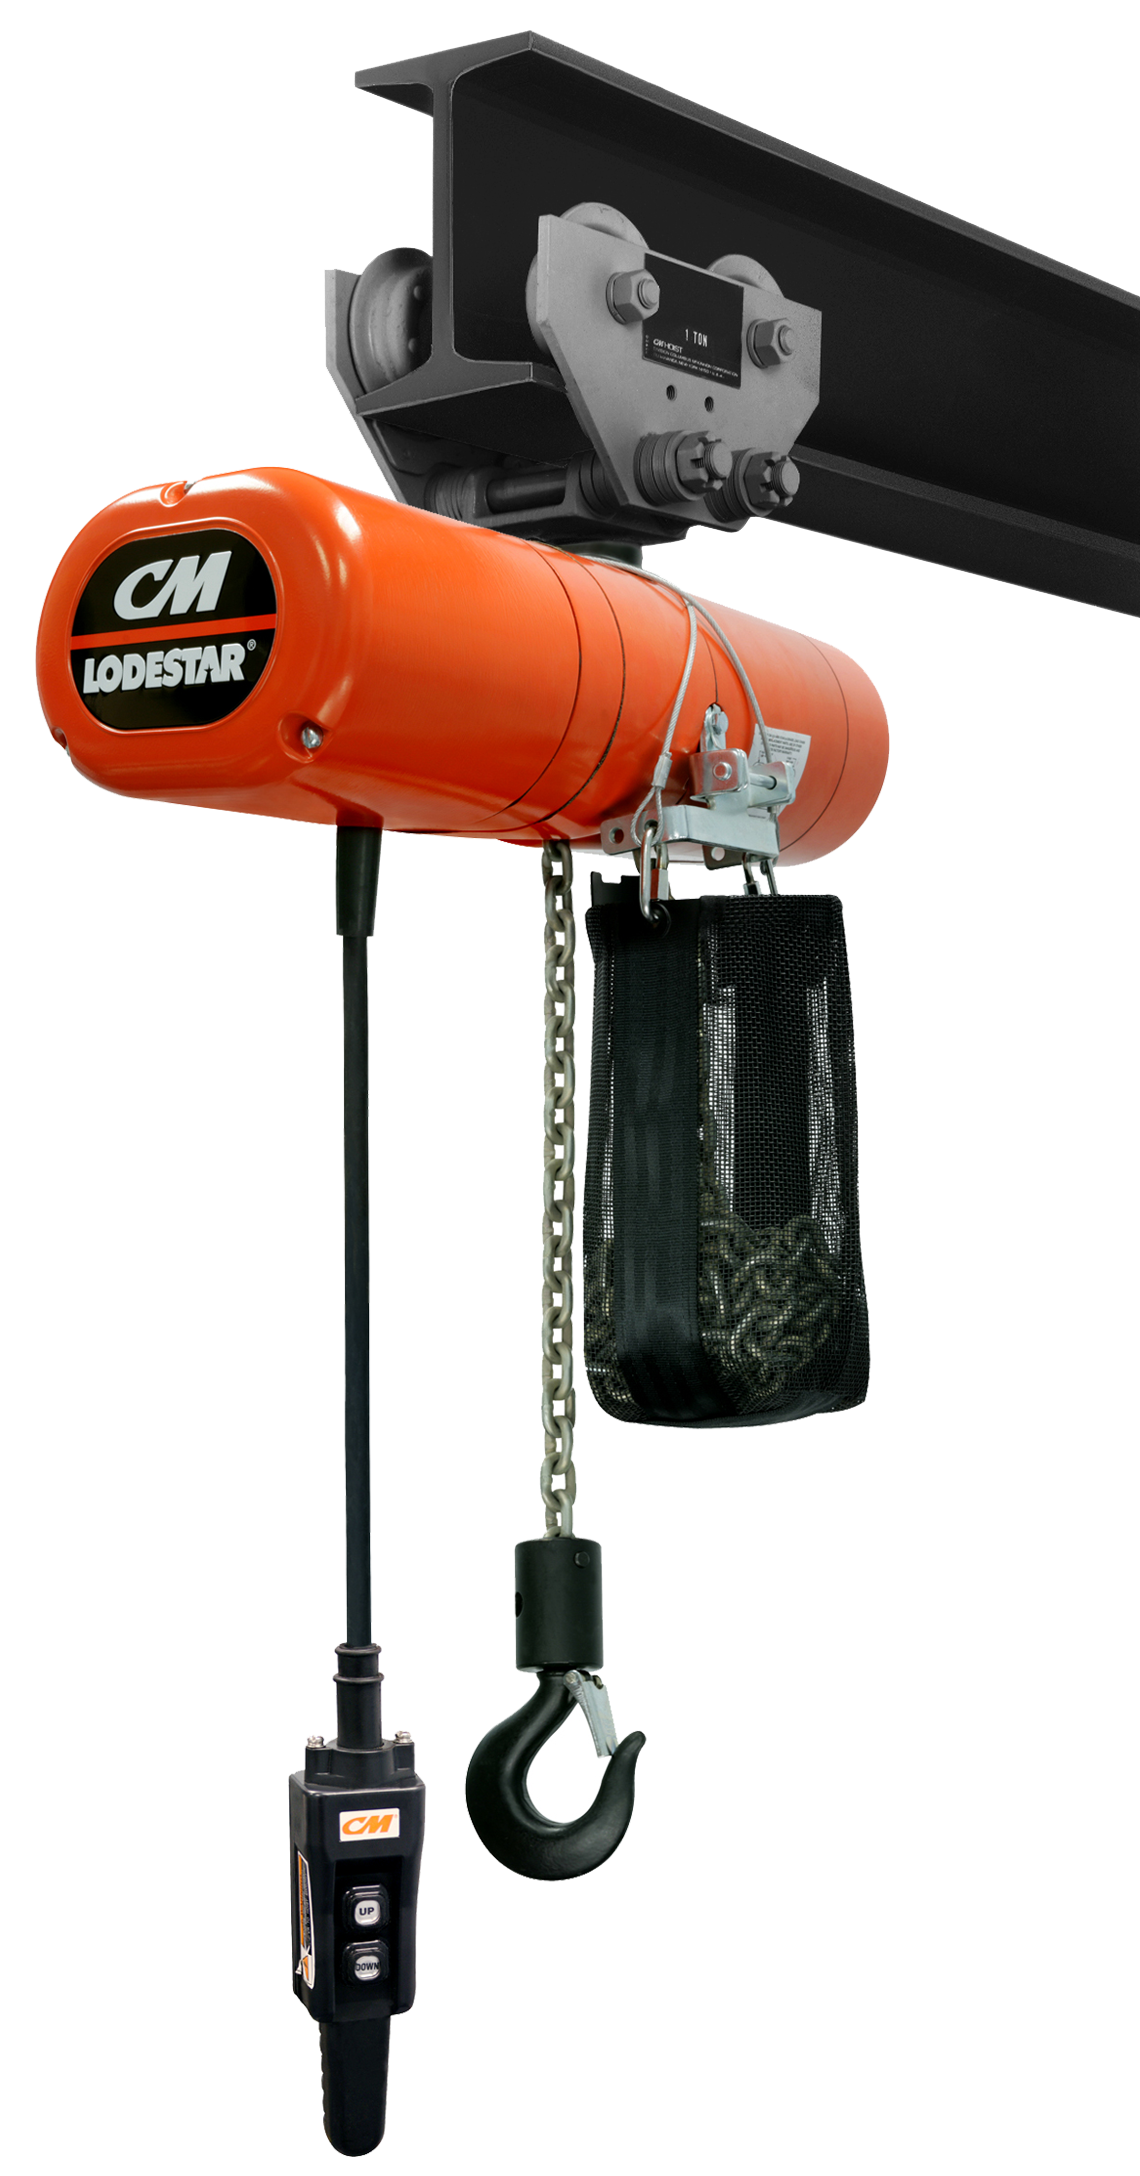 CM LodeStar Electric Chain Hoist, Three Phase with Push Trolley